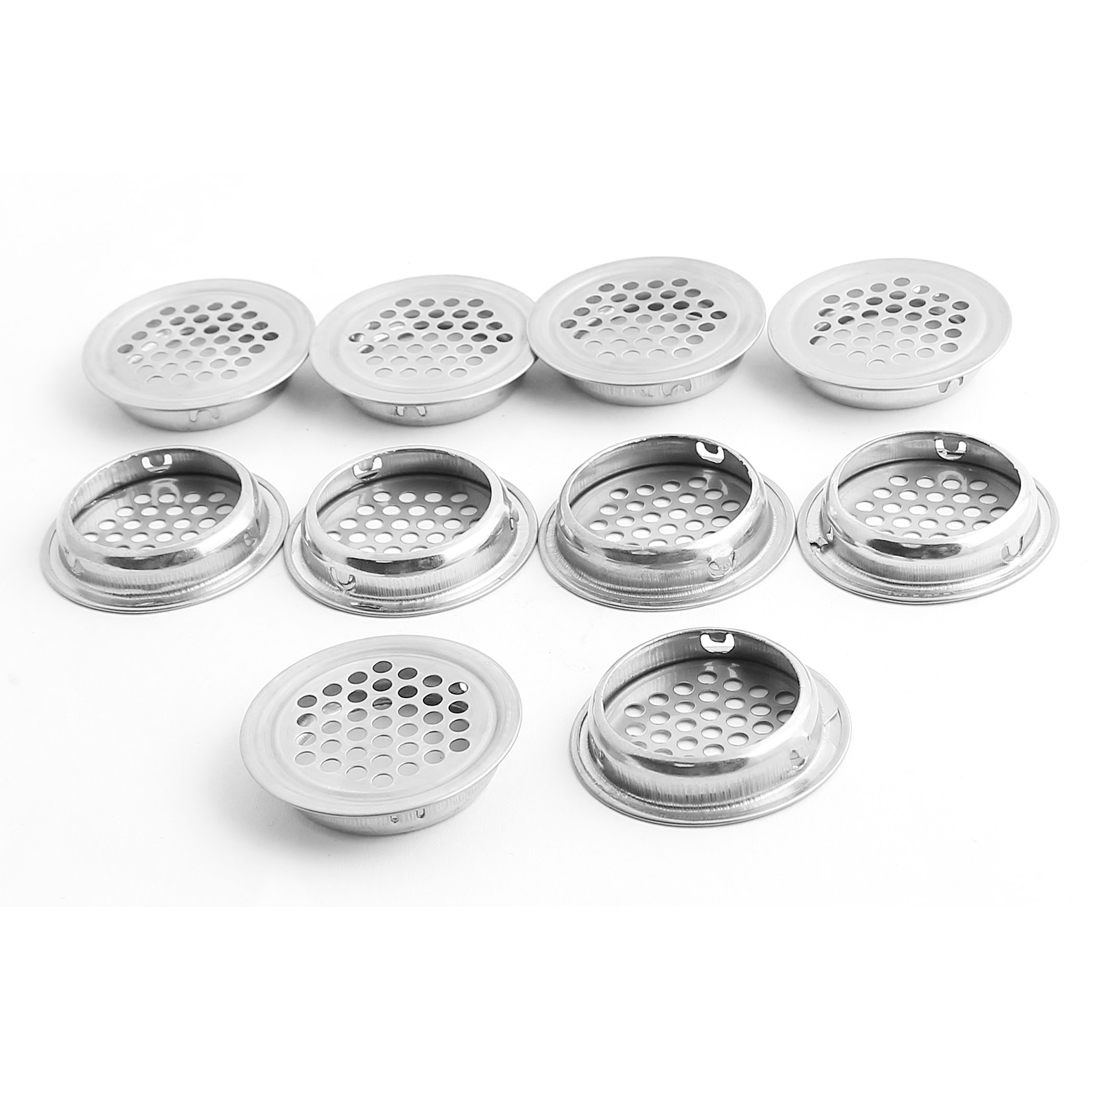 Furniture 35mm Bottom Dia Air Vent Grille Ventilation Cover Silver Tone 10PCS